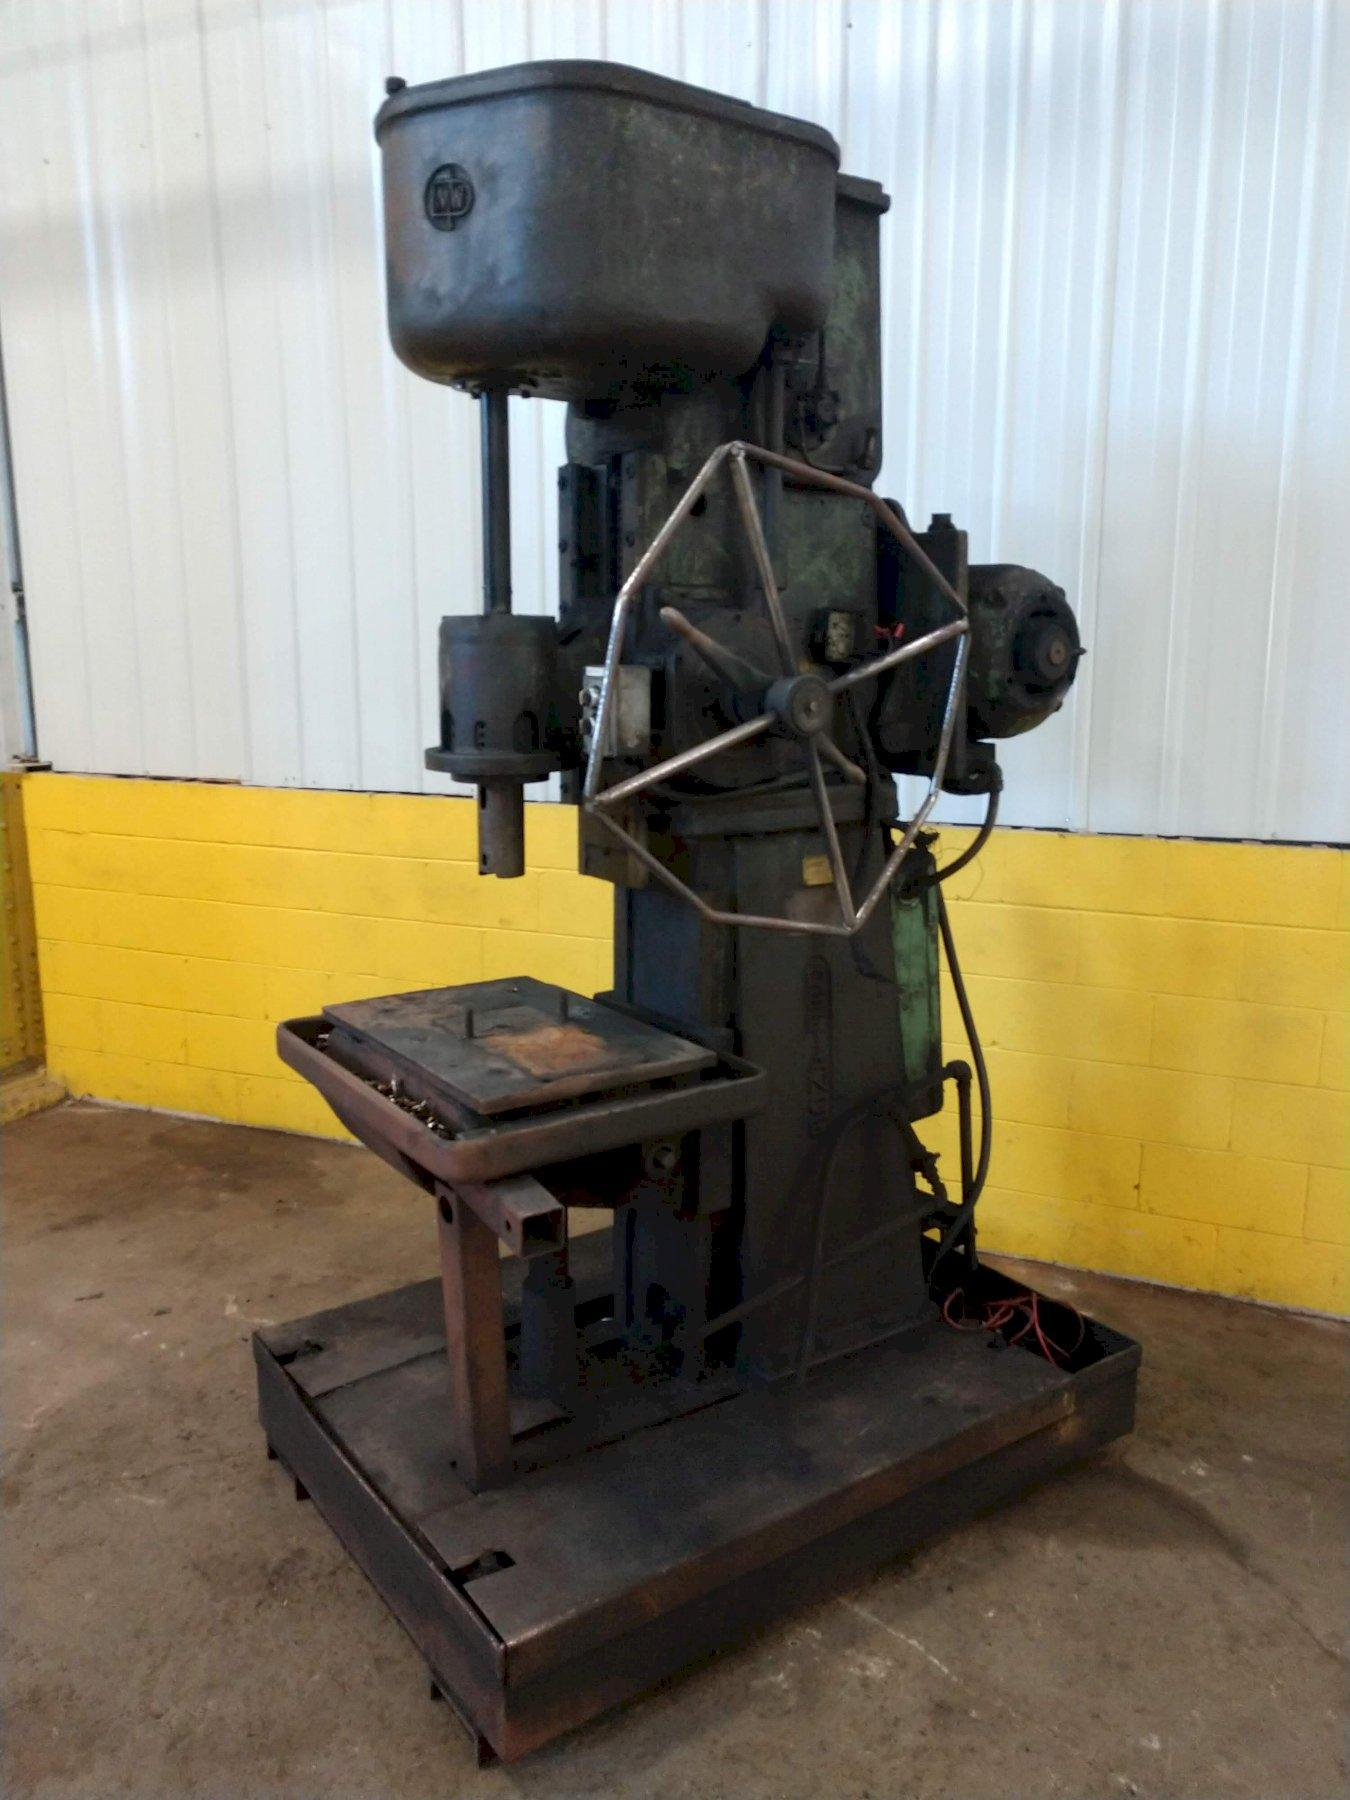 DEFIANCE MACHINE WORKS MODEL 200 SINGLE SPINDLE DRILL: STOCK #13426